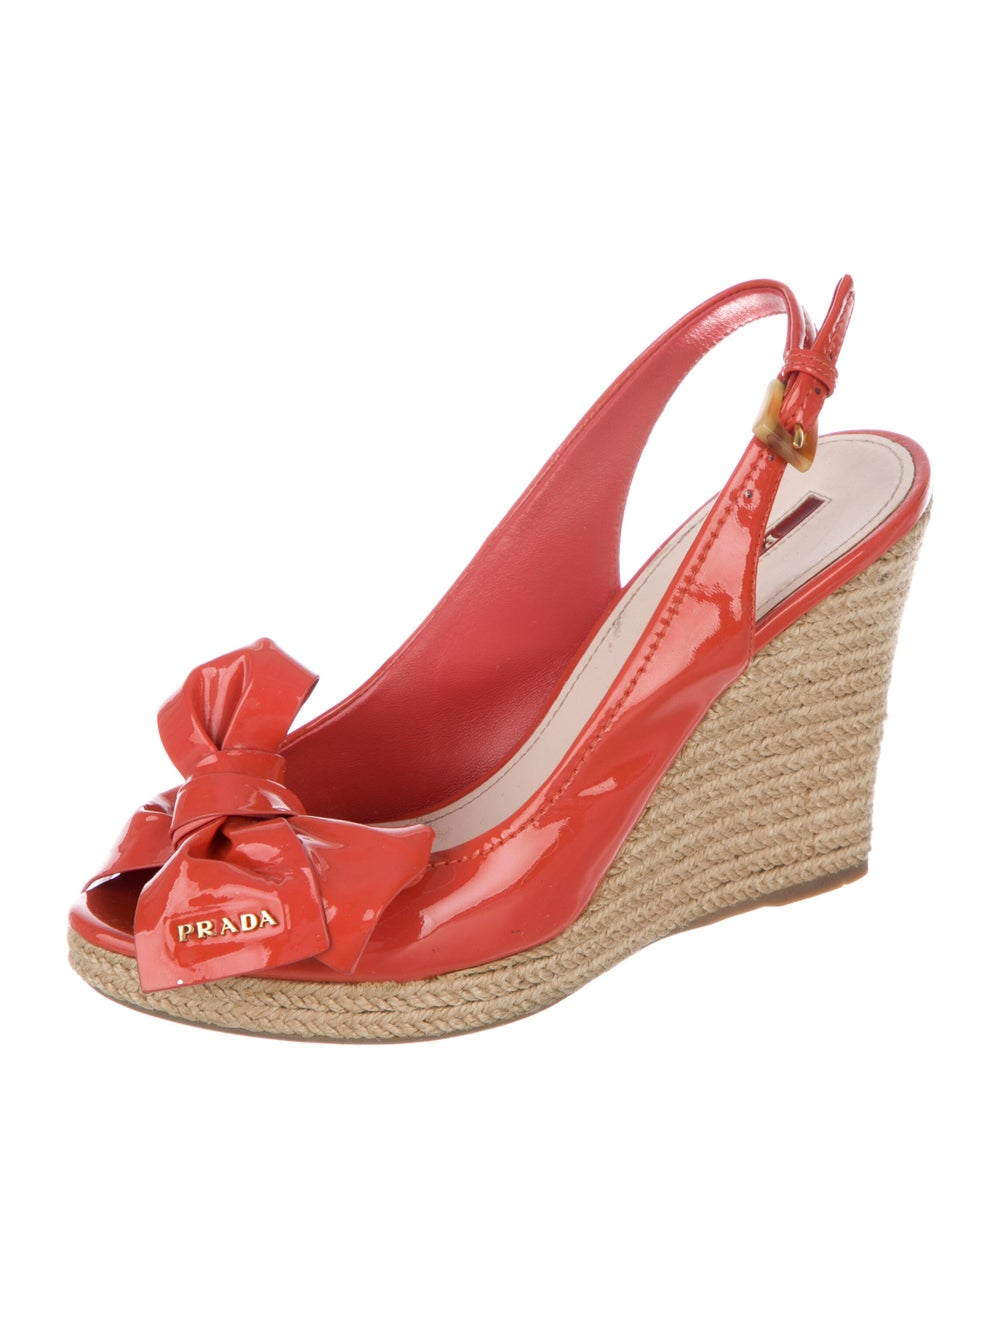 Prada Sport Patent Leather Bow Accents Espadrille… - image 2